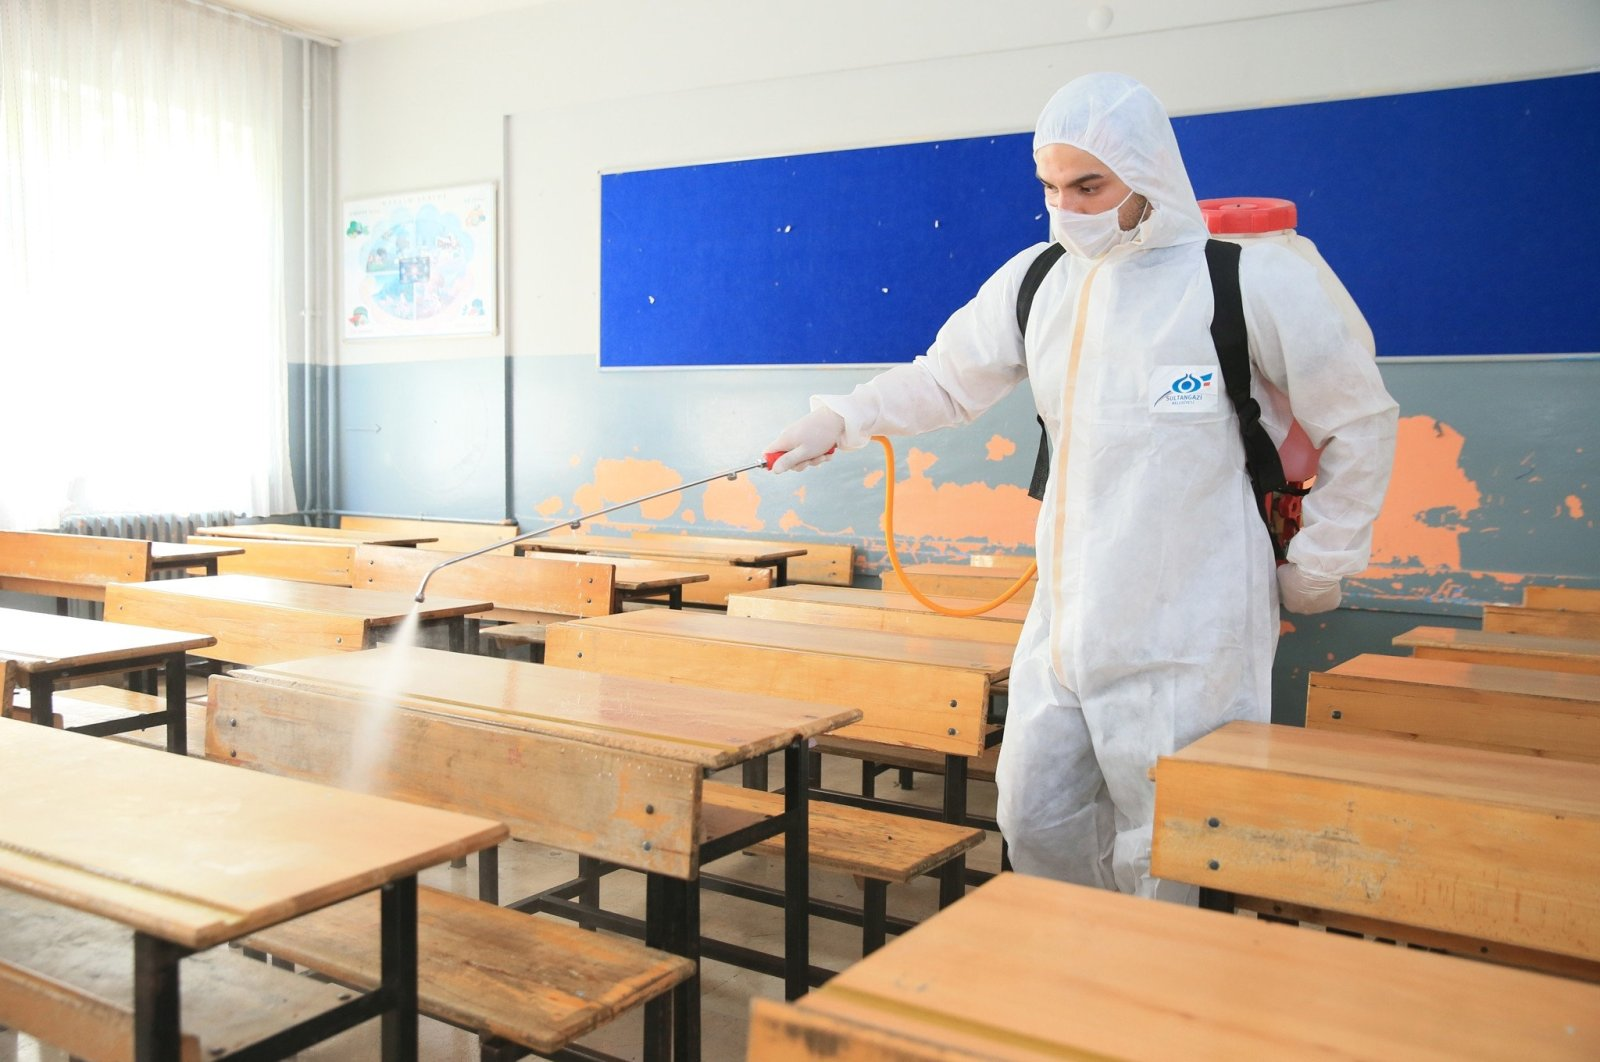 A worker disinfects a classroom at a school in the Sultangazi district, in Istanbul, Turkey, June 18, 2020. (IHA Photo)